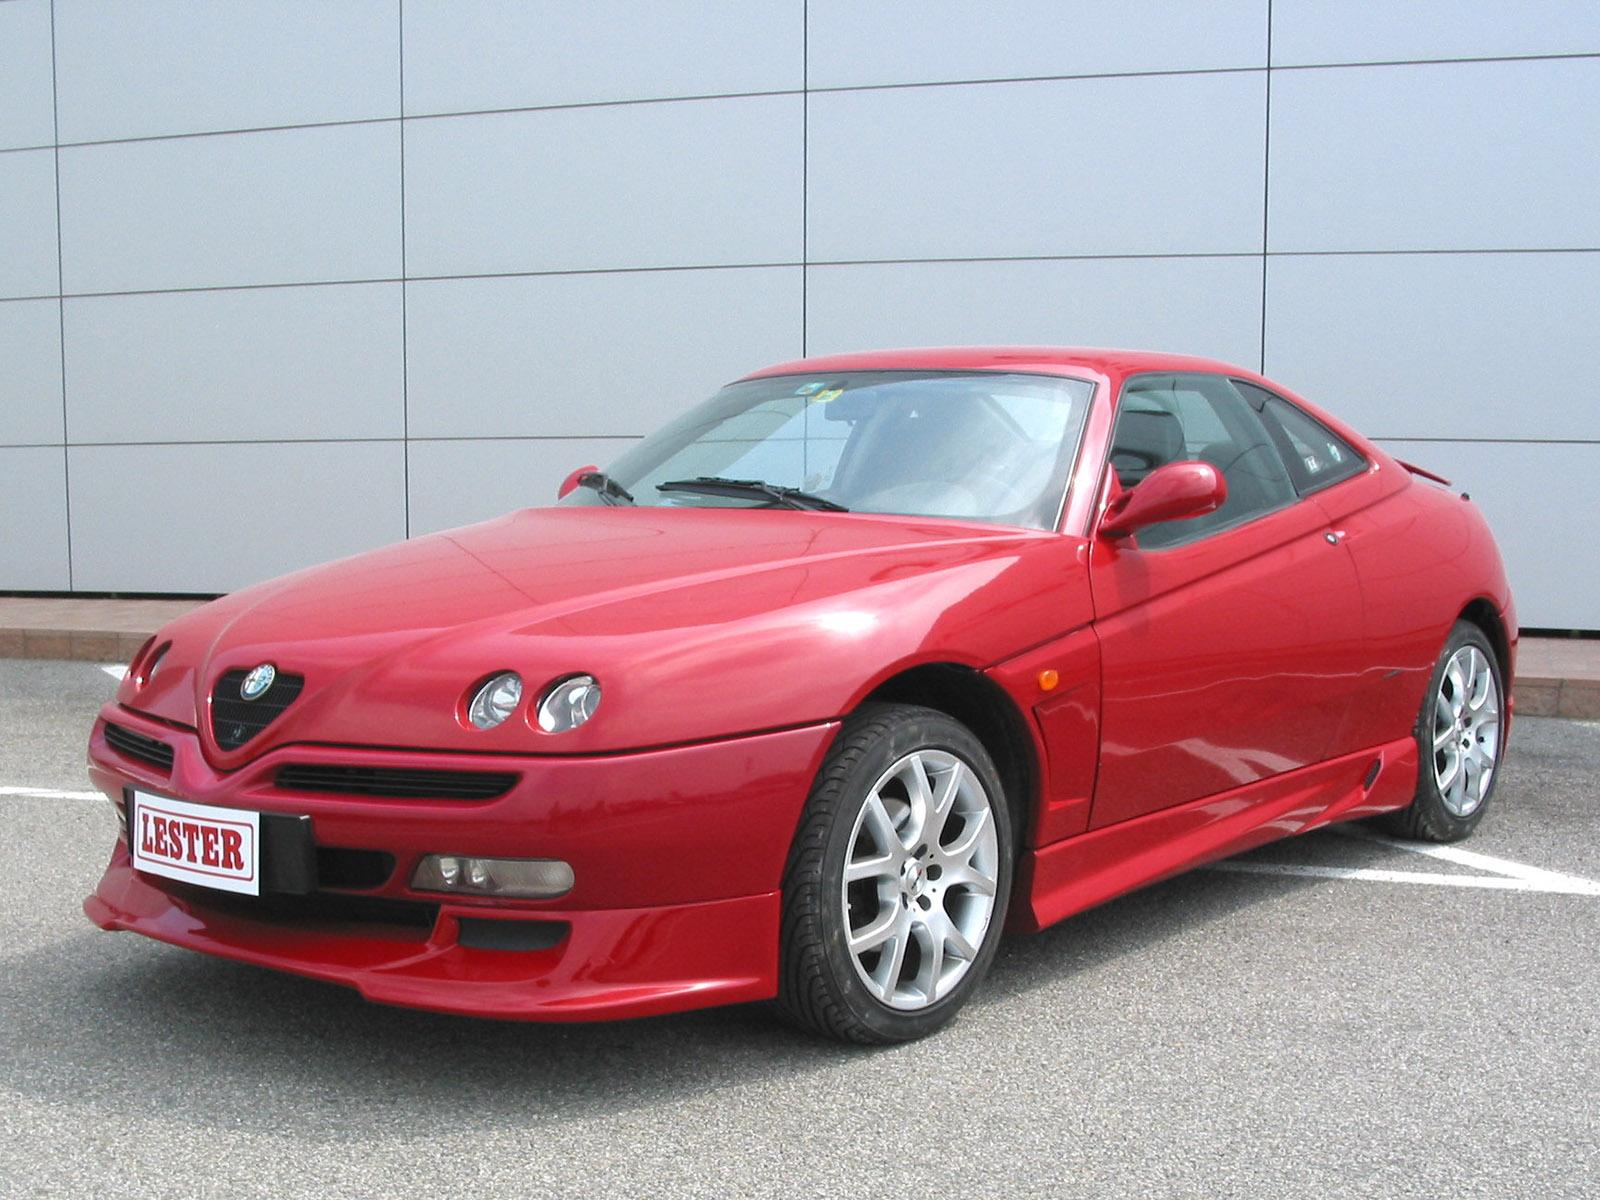 Alfa Romeo Gtv Related Images,start 300